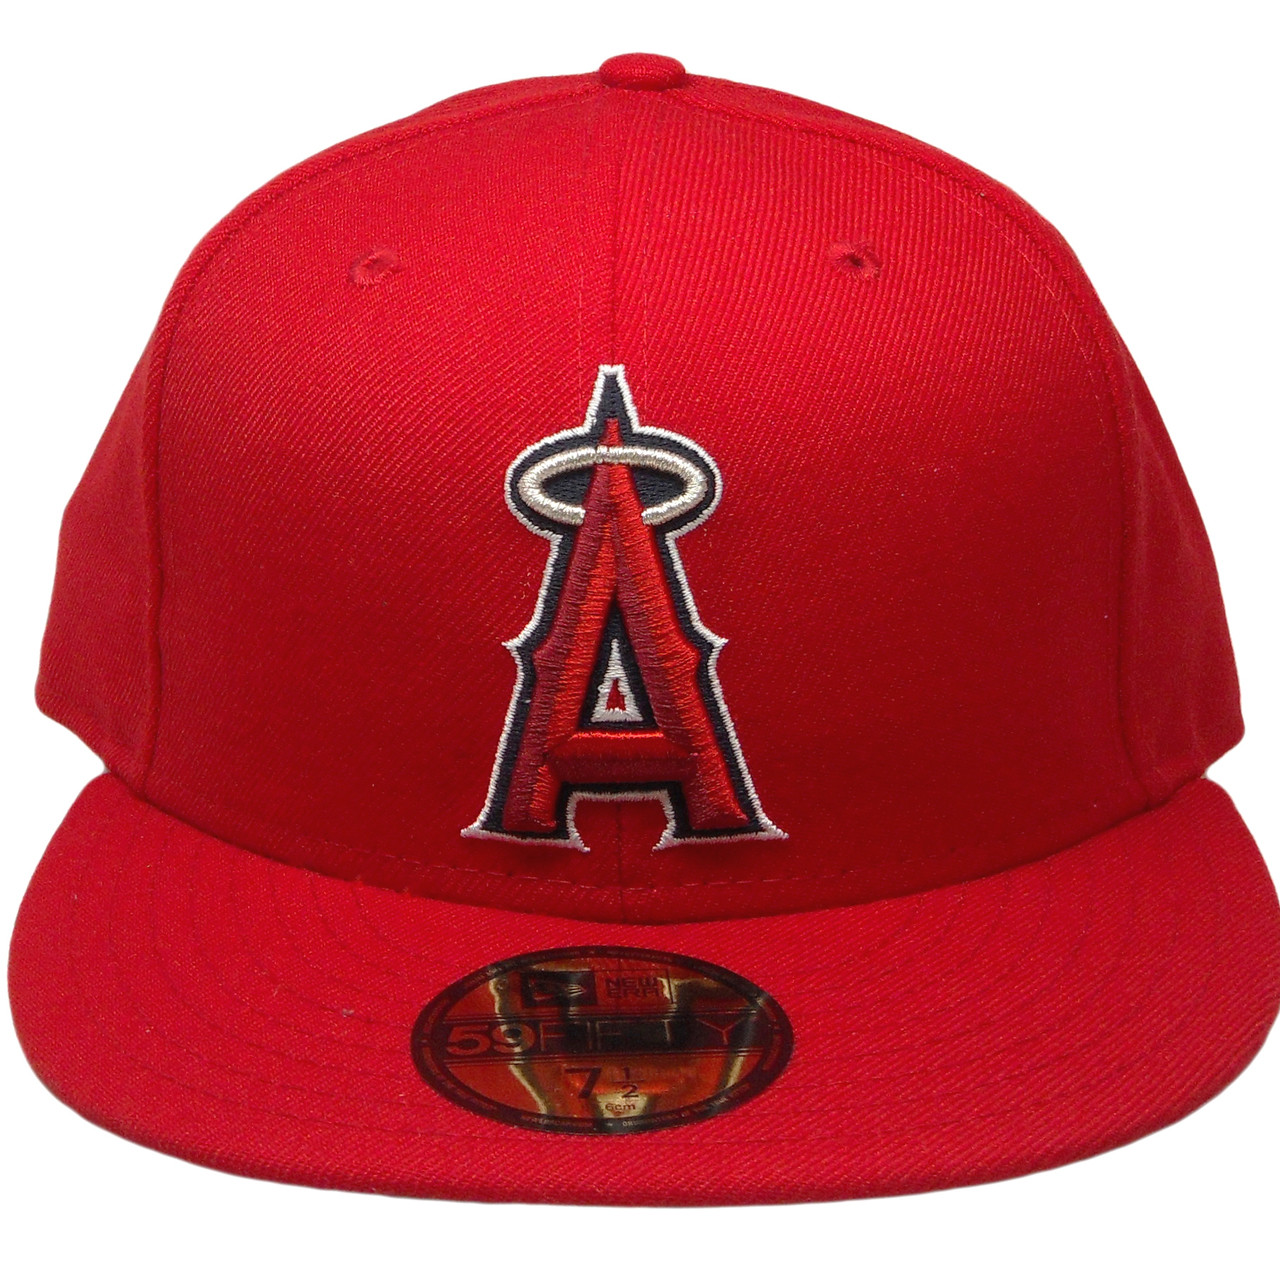 0678dbe22969ae Anaheim Angels New Era Custom 59Fifty Fitted Hat - Red